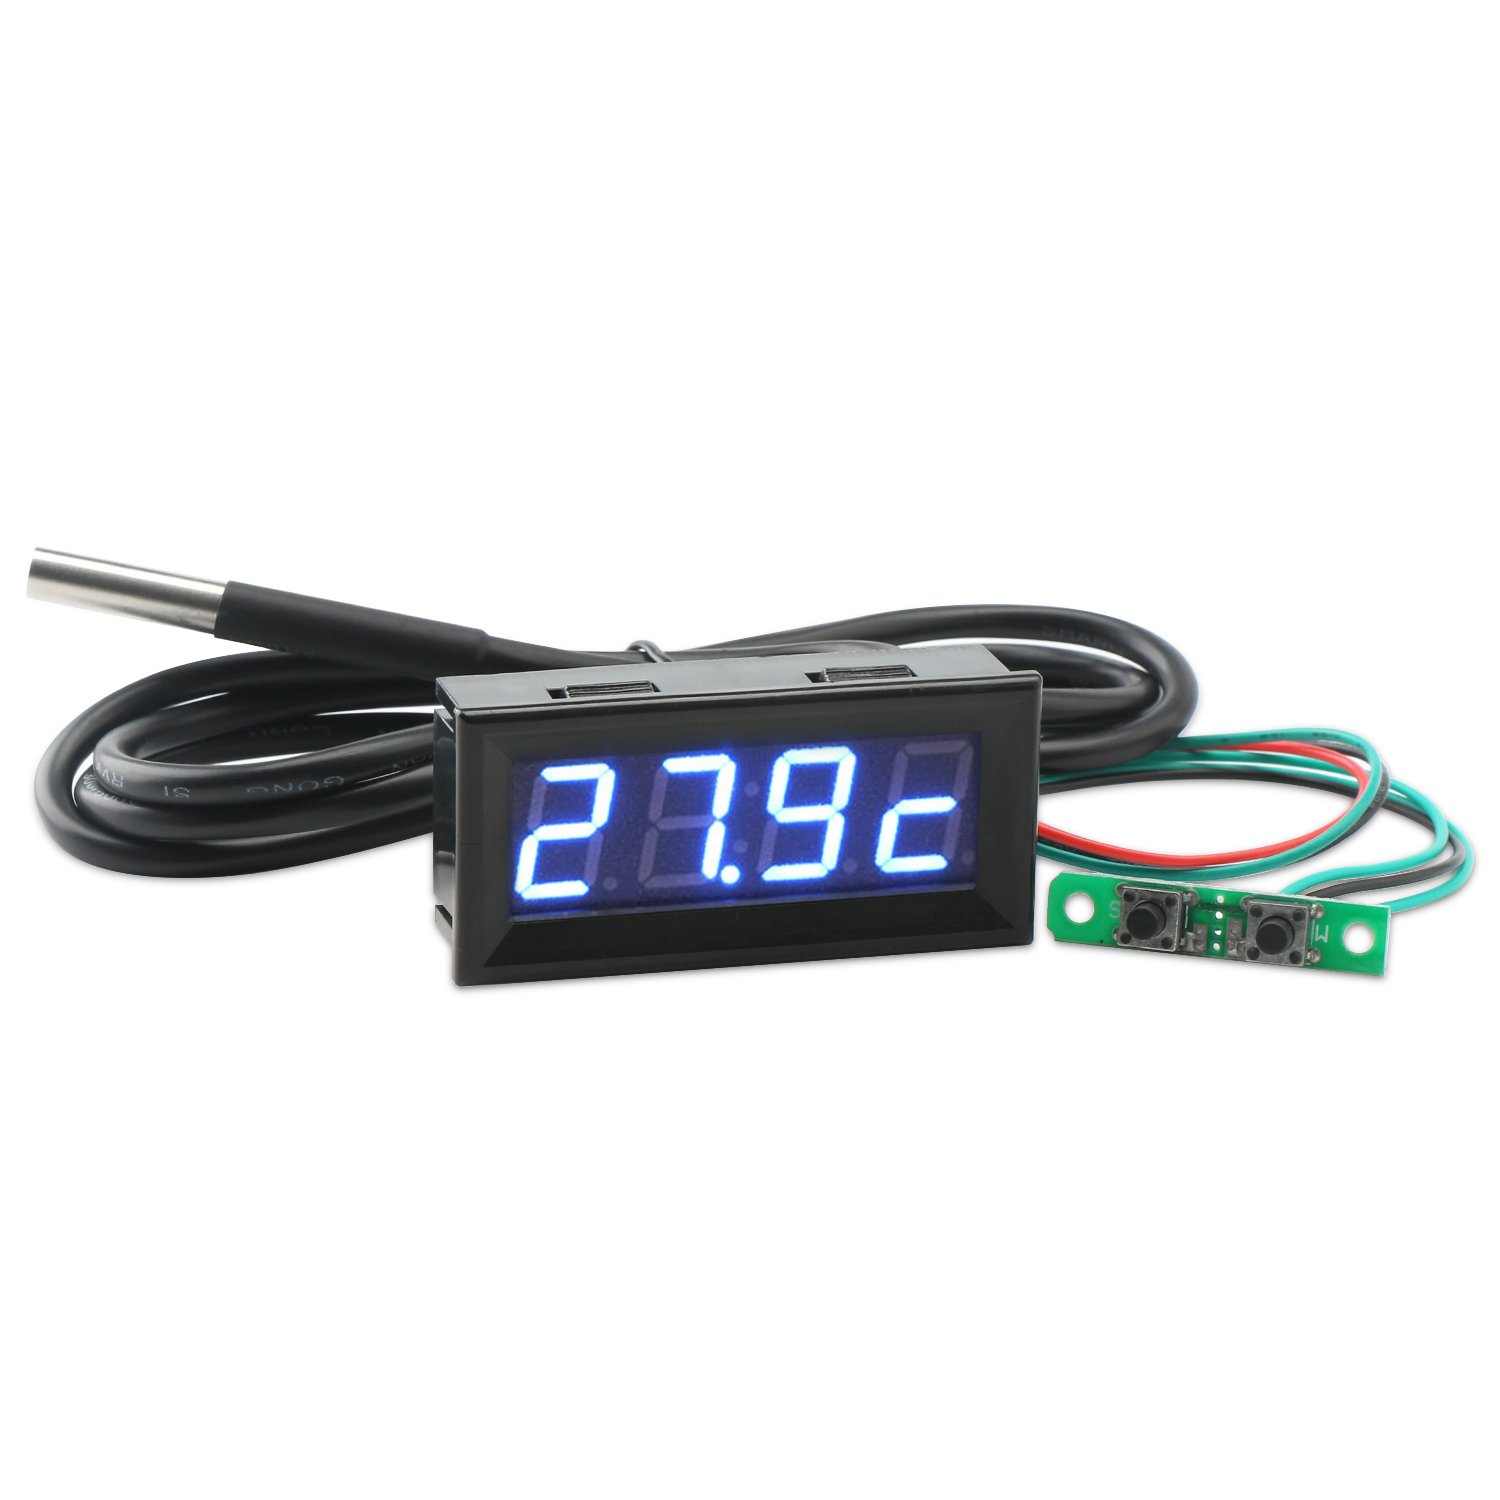 Droking 0, 56 DC 12V MCU Horloge Numé rique Voitures Tempé rature de Moniteur de Tension Bleu Affichage LED Multimè tre 56 DC 12V MCU Horloge Numérique Voitures Température de Moniteur de Tension Bleu Affichage LED Multimètre 090665_OZ